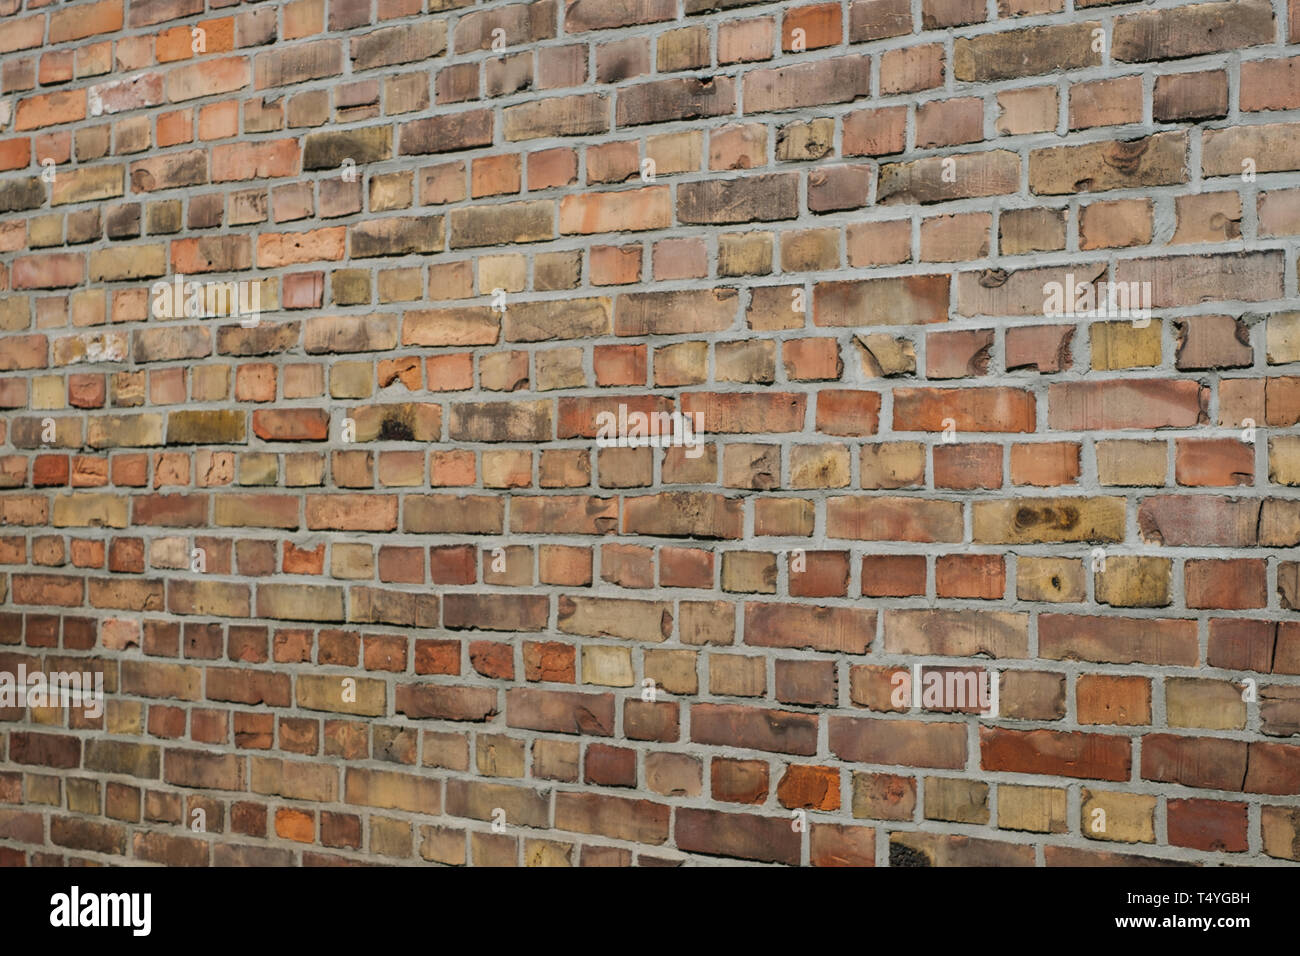 Brick wall background brick stones perspective stock image